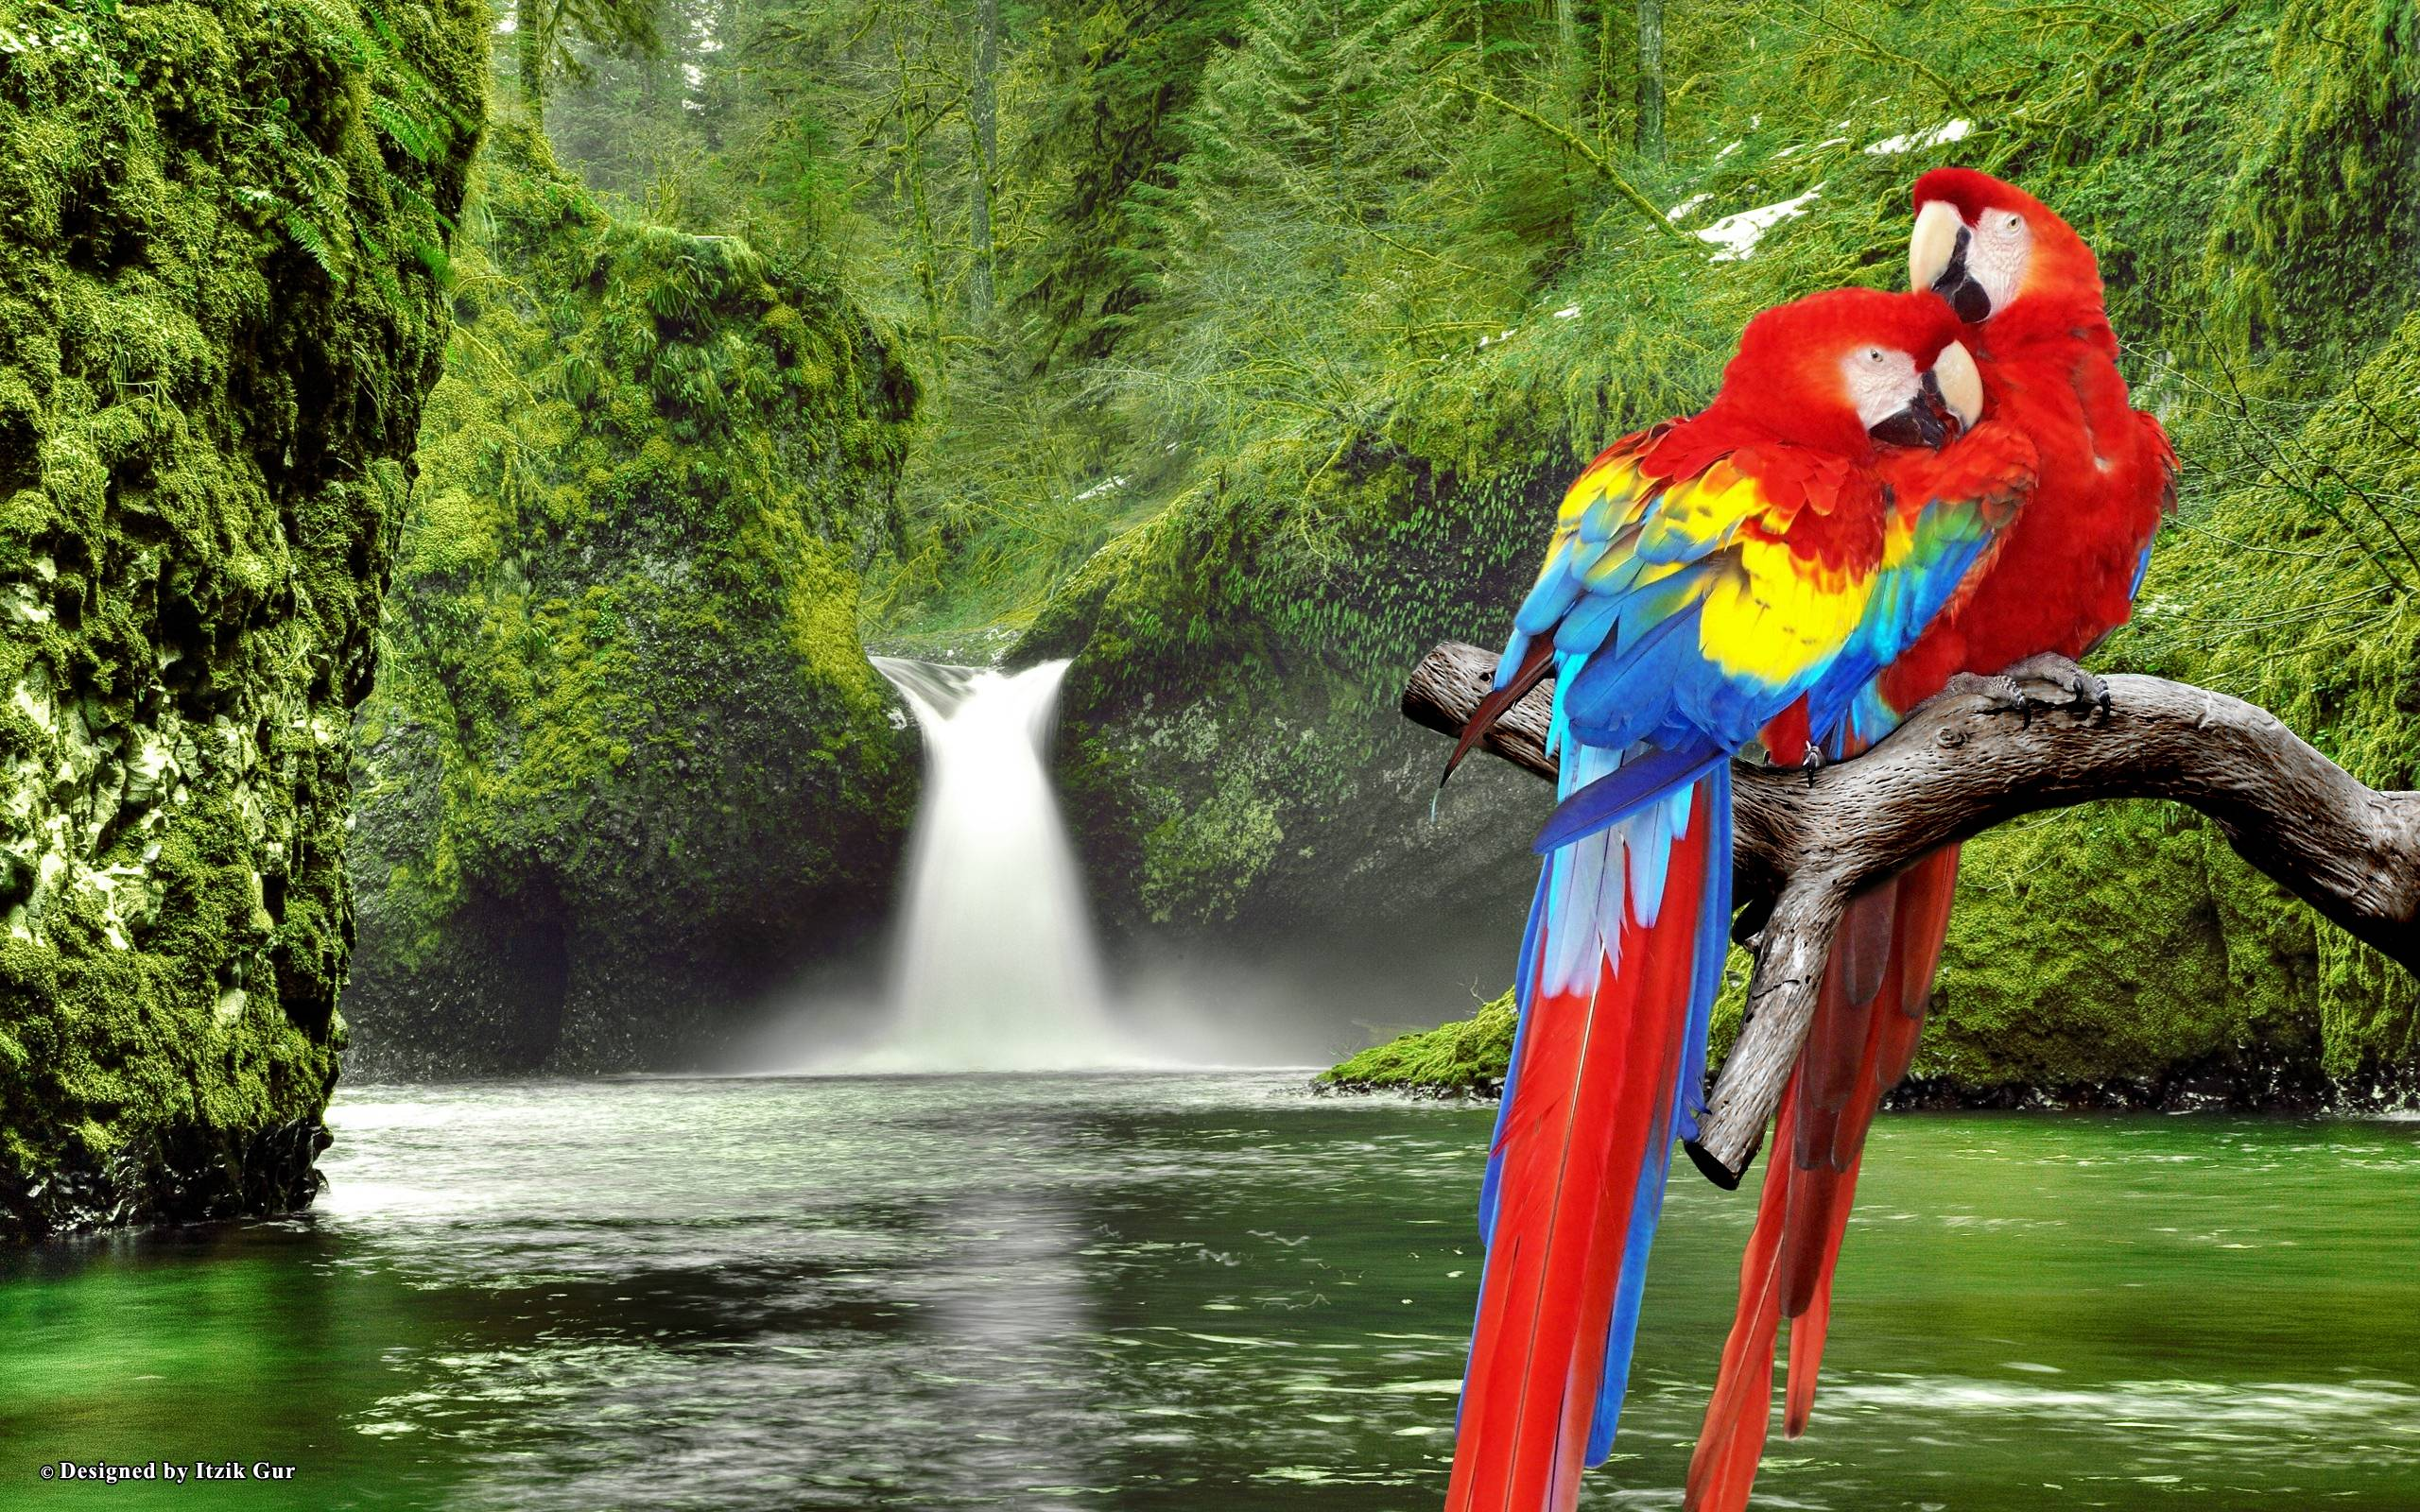 Macaw Parrots over Waterfall : Desktop and mobile wallpapers : Wallippo